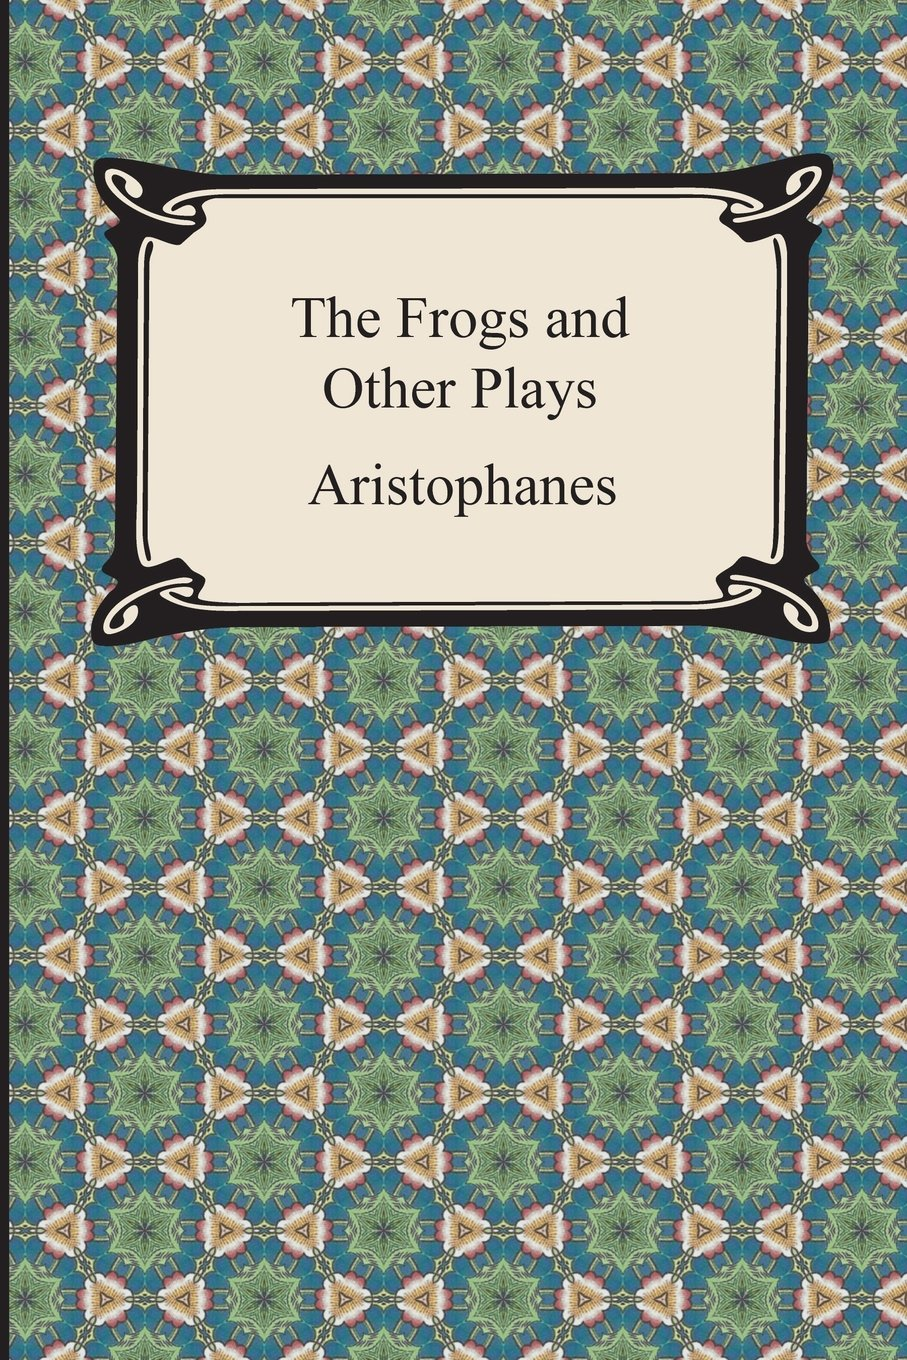 The frogs and other plays aristophanes 9781420947649 amazon the frogs and other plays aristophanes 9781420947649 amazon books fandeluxe PDF